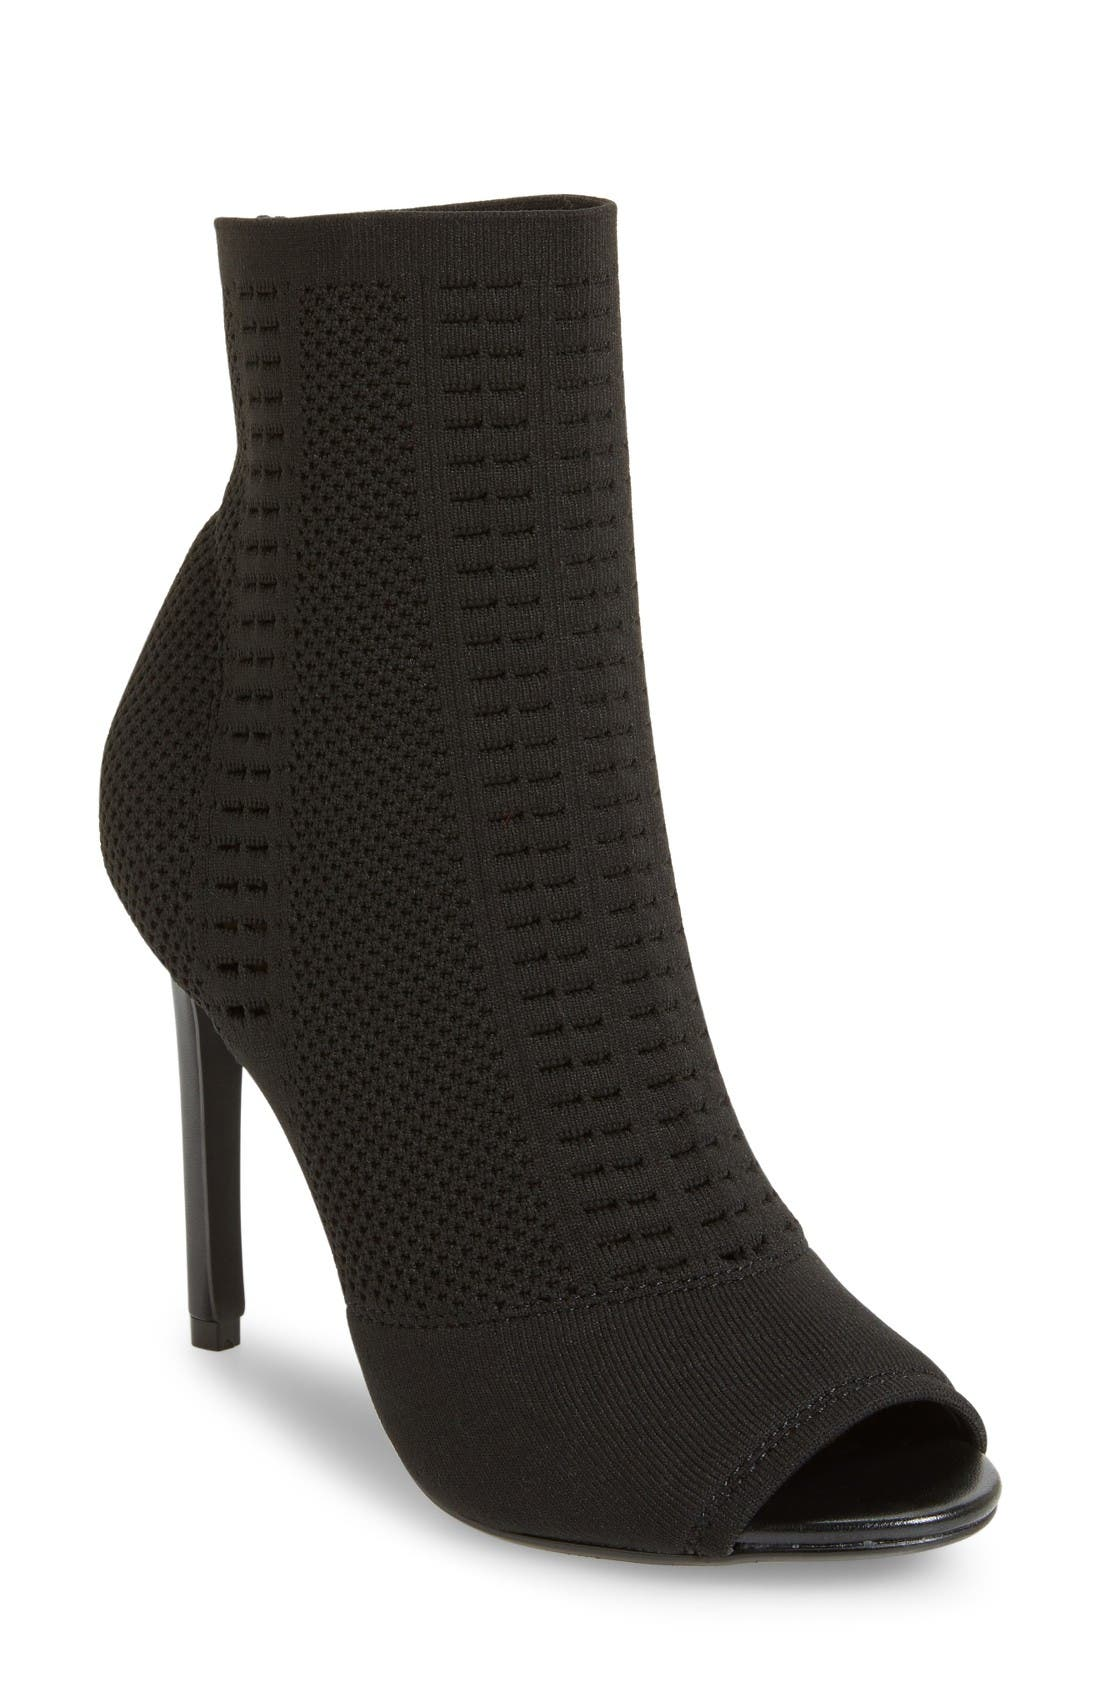 Candid Knit Bootie,                         Main,                         color, Black Fabric